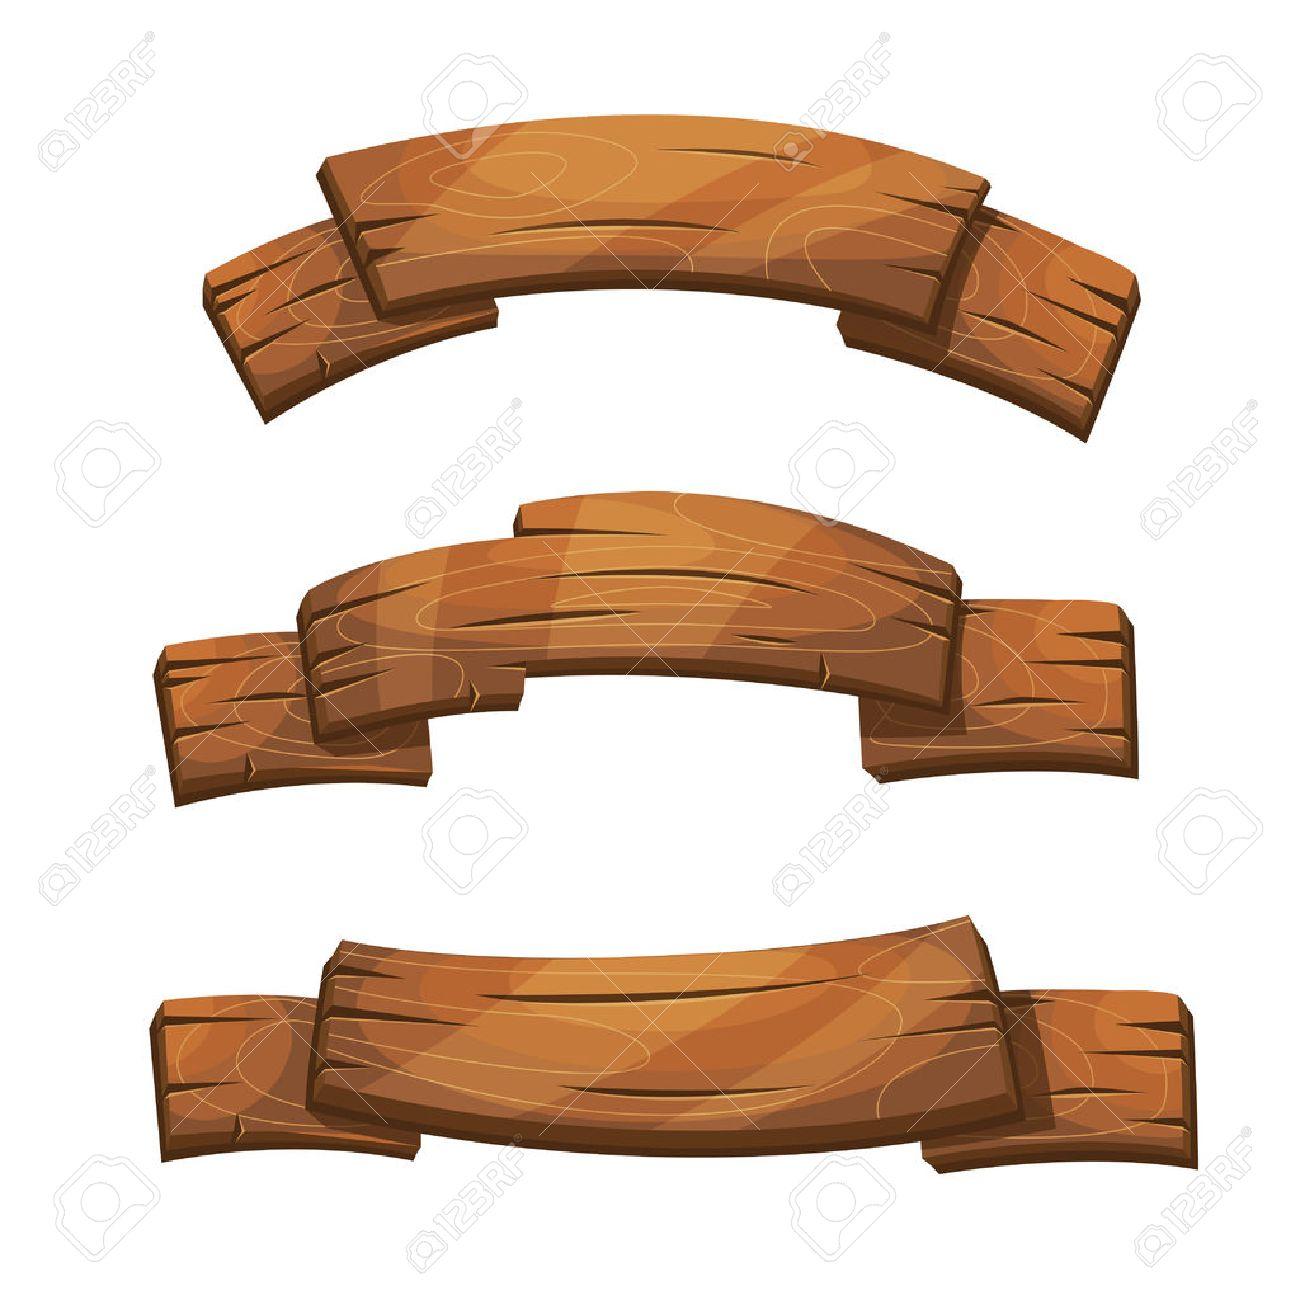 Beau Comic Wooden Banners And Signs. Wood Plank Board, Cartoon Wooden Brown  Board Illustration Stock